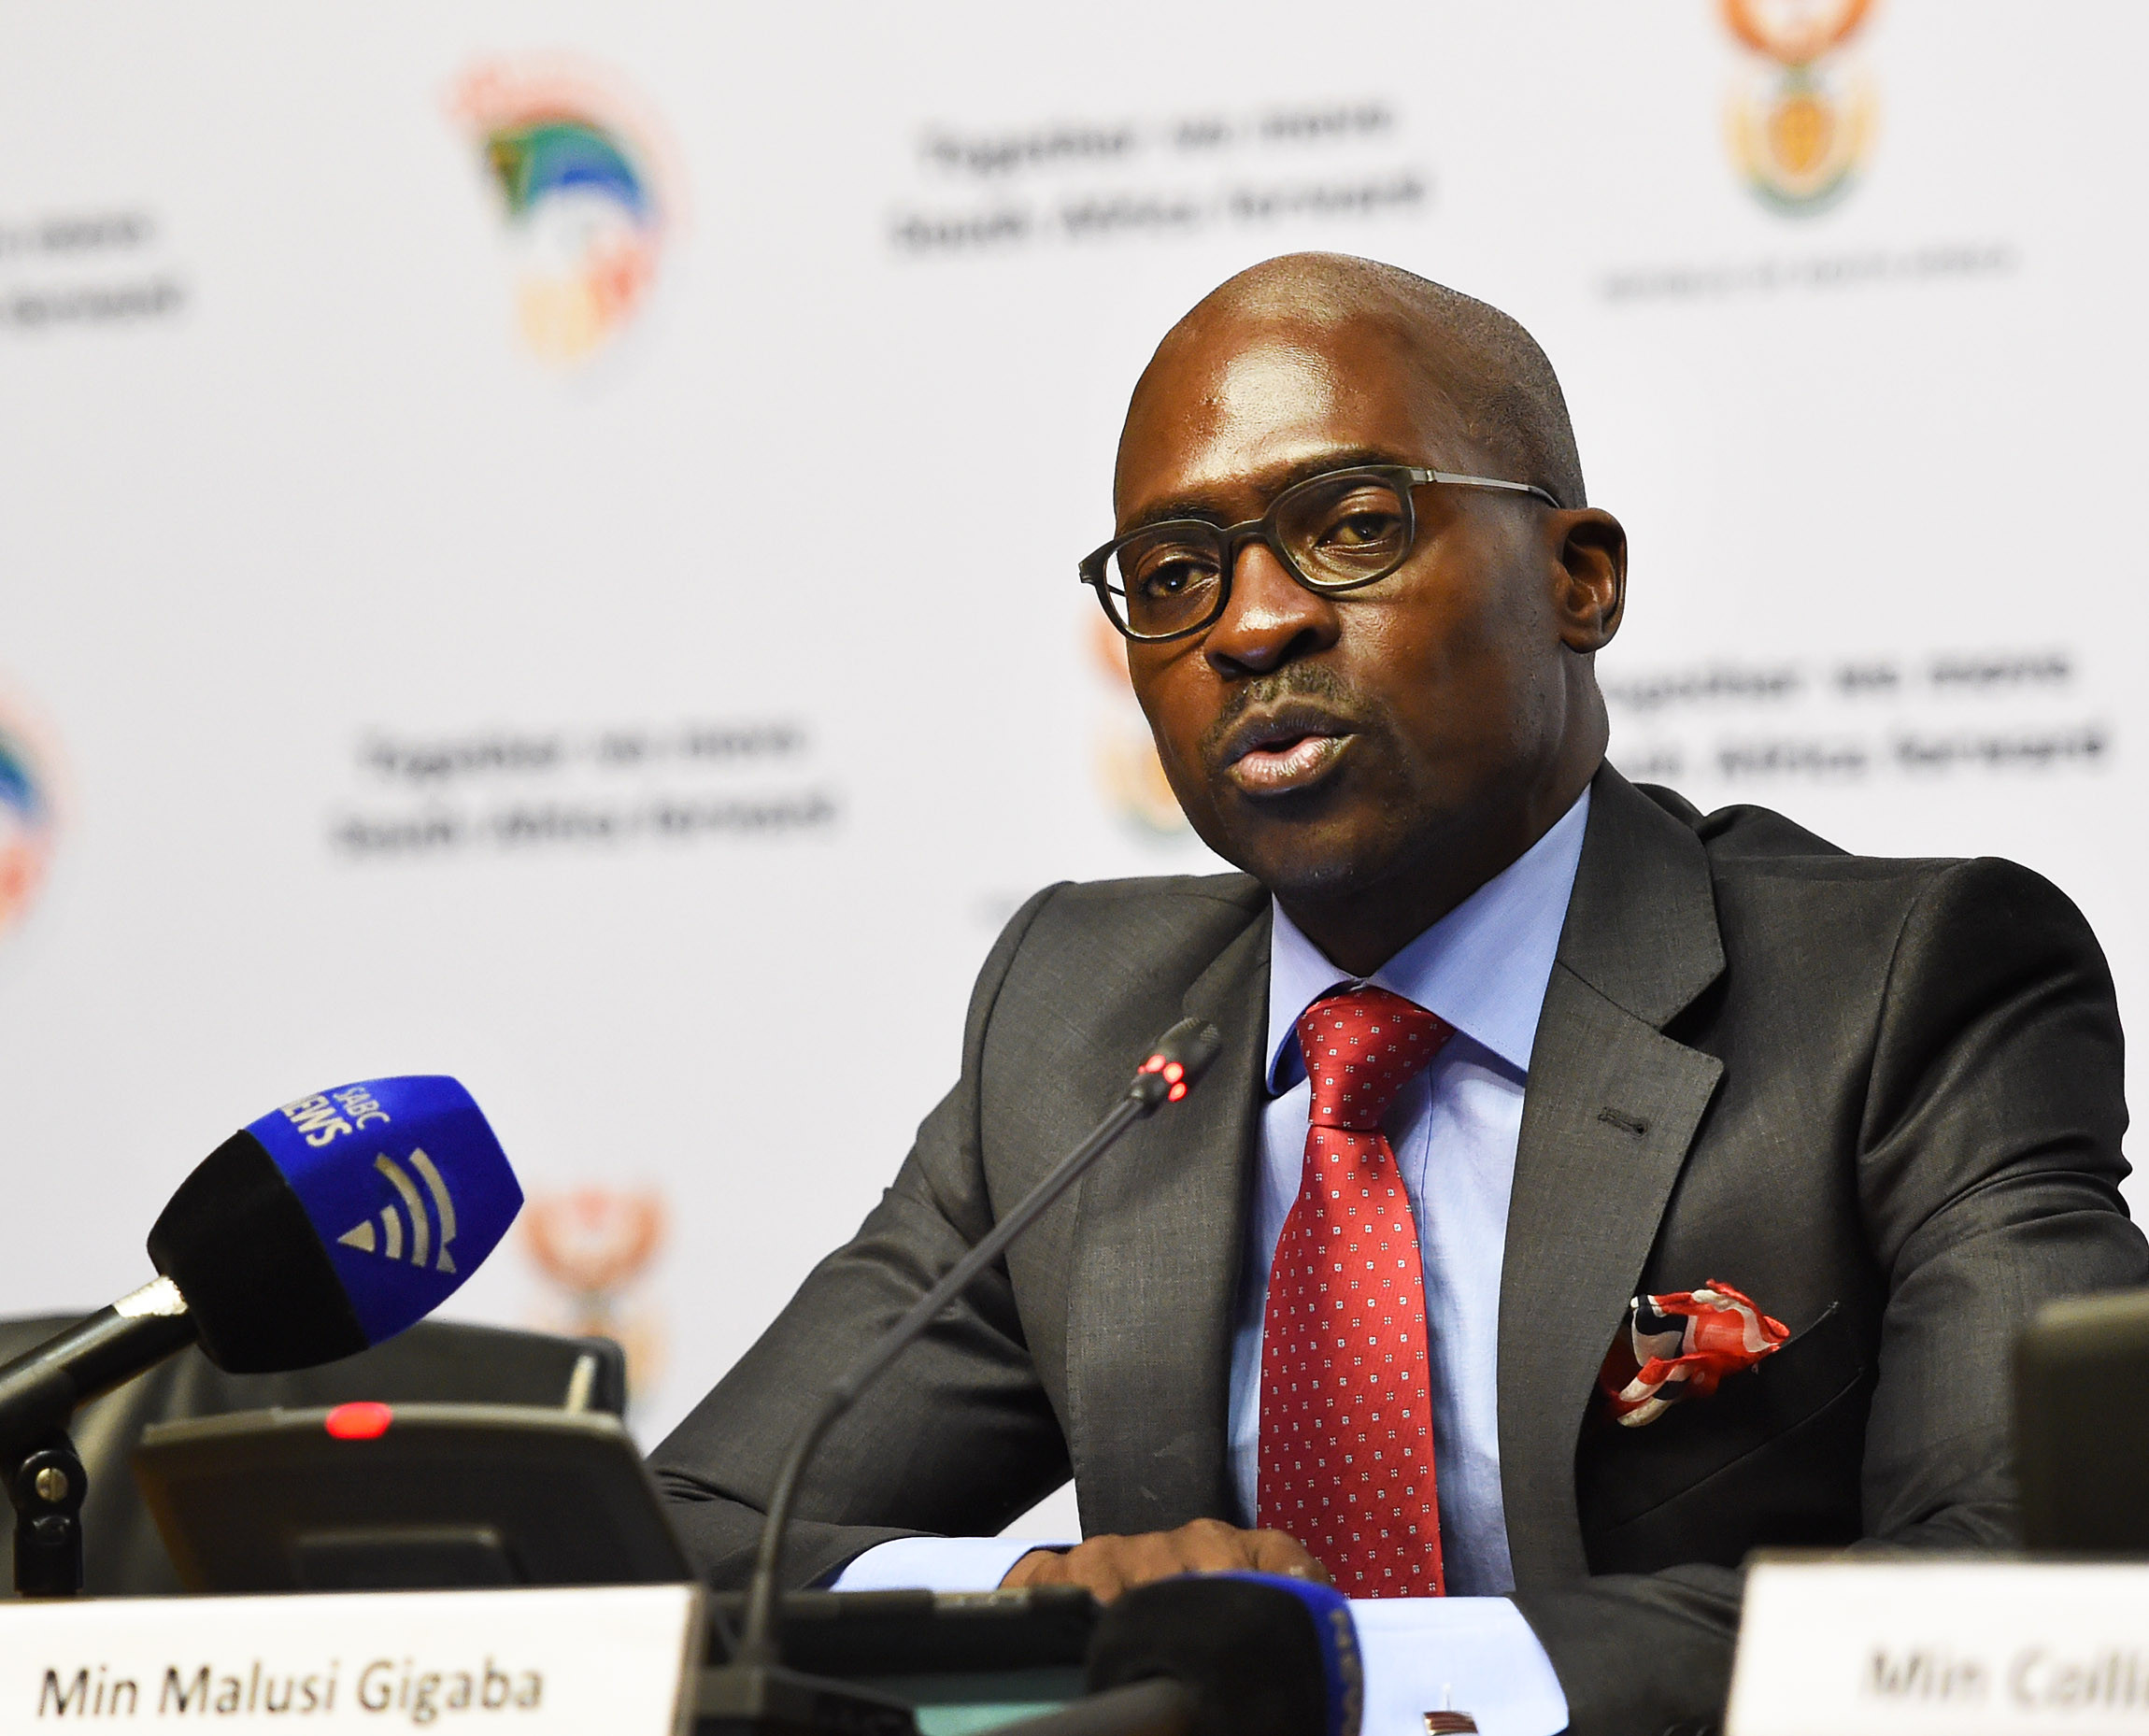 The 44-year-old Malusi Gigaba, minister of public enterprise and now, minister of home affairs, under Jacob Zuma, has been tagged as a rising ANC star.